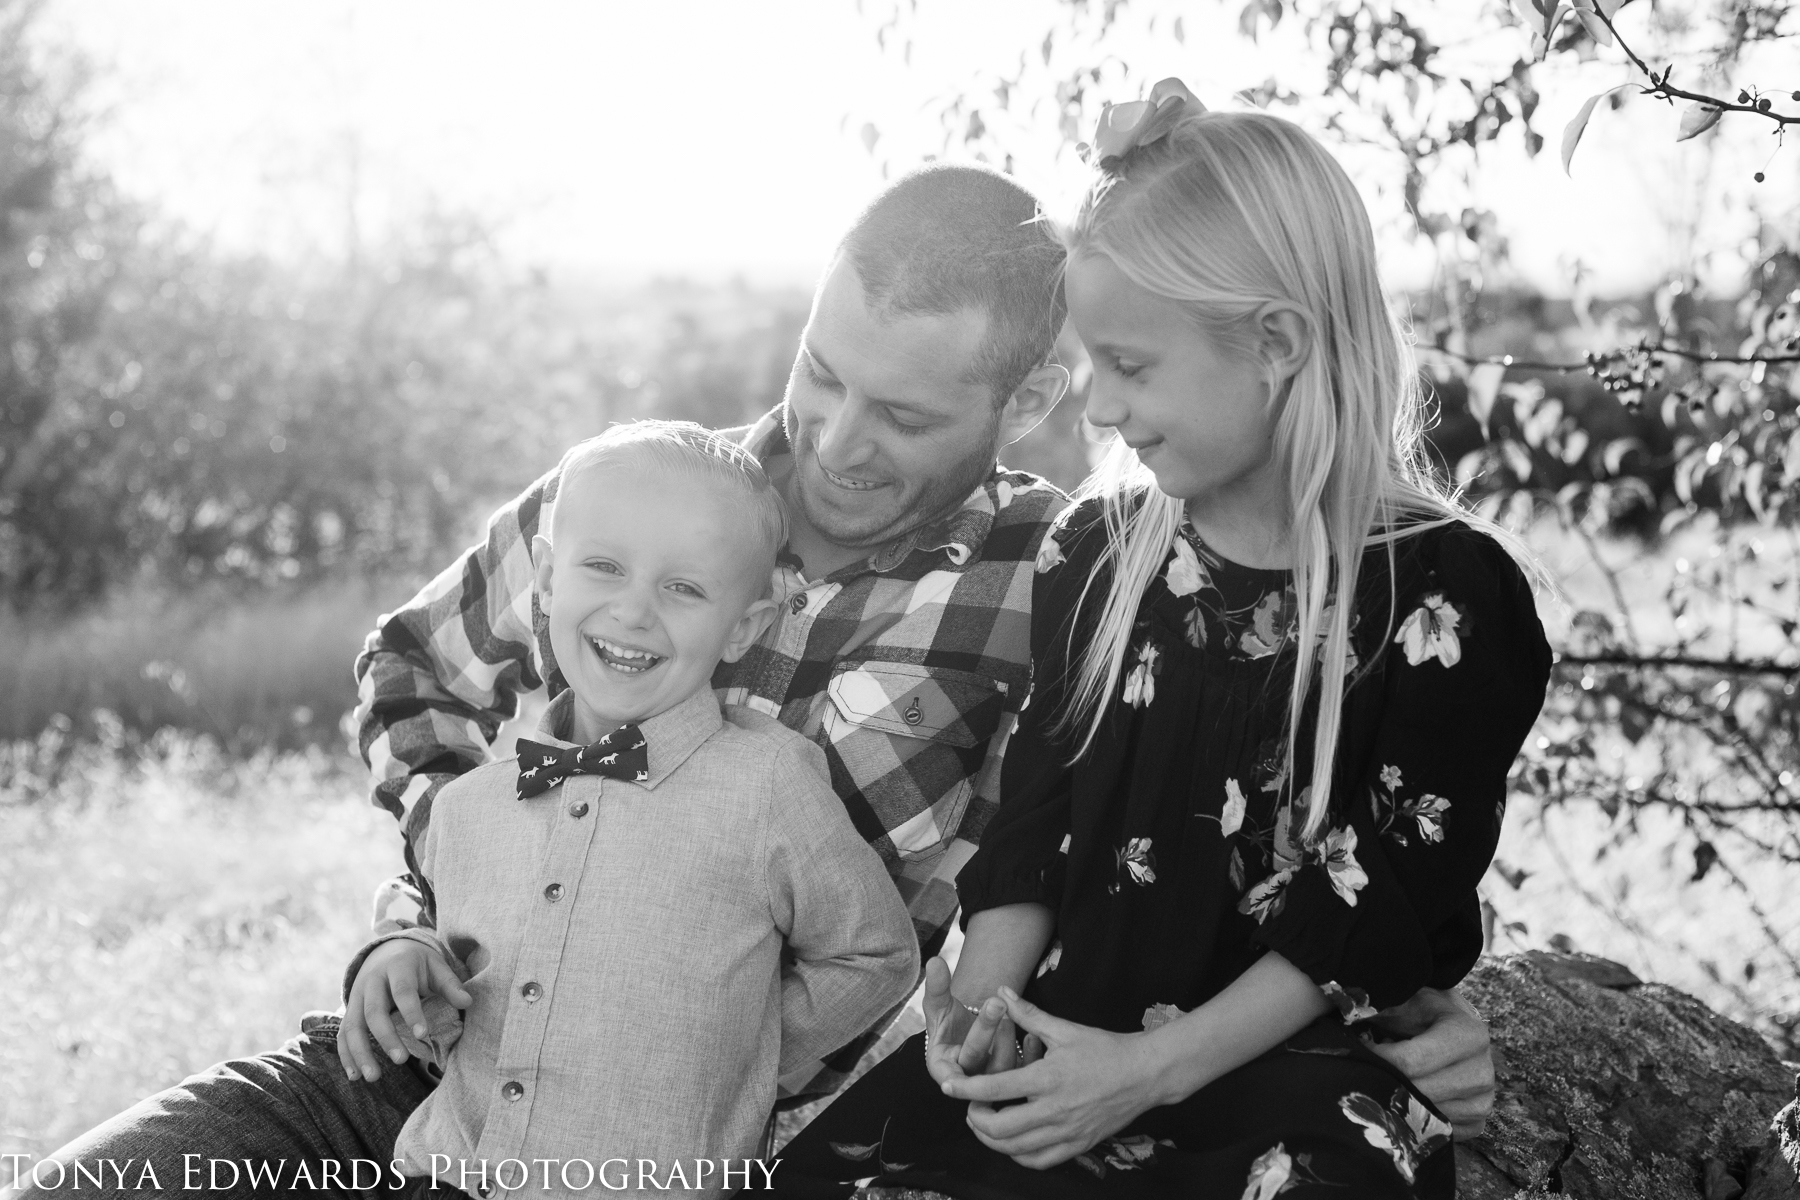 Tonya Edwards | Oroville Photographer | father and son and daughter playing laughing in black and white at golden hour